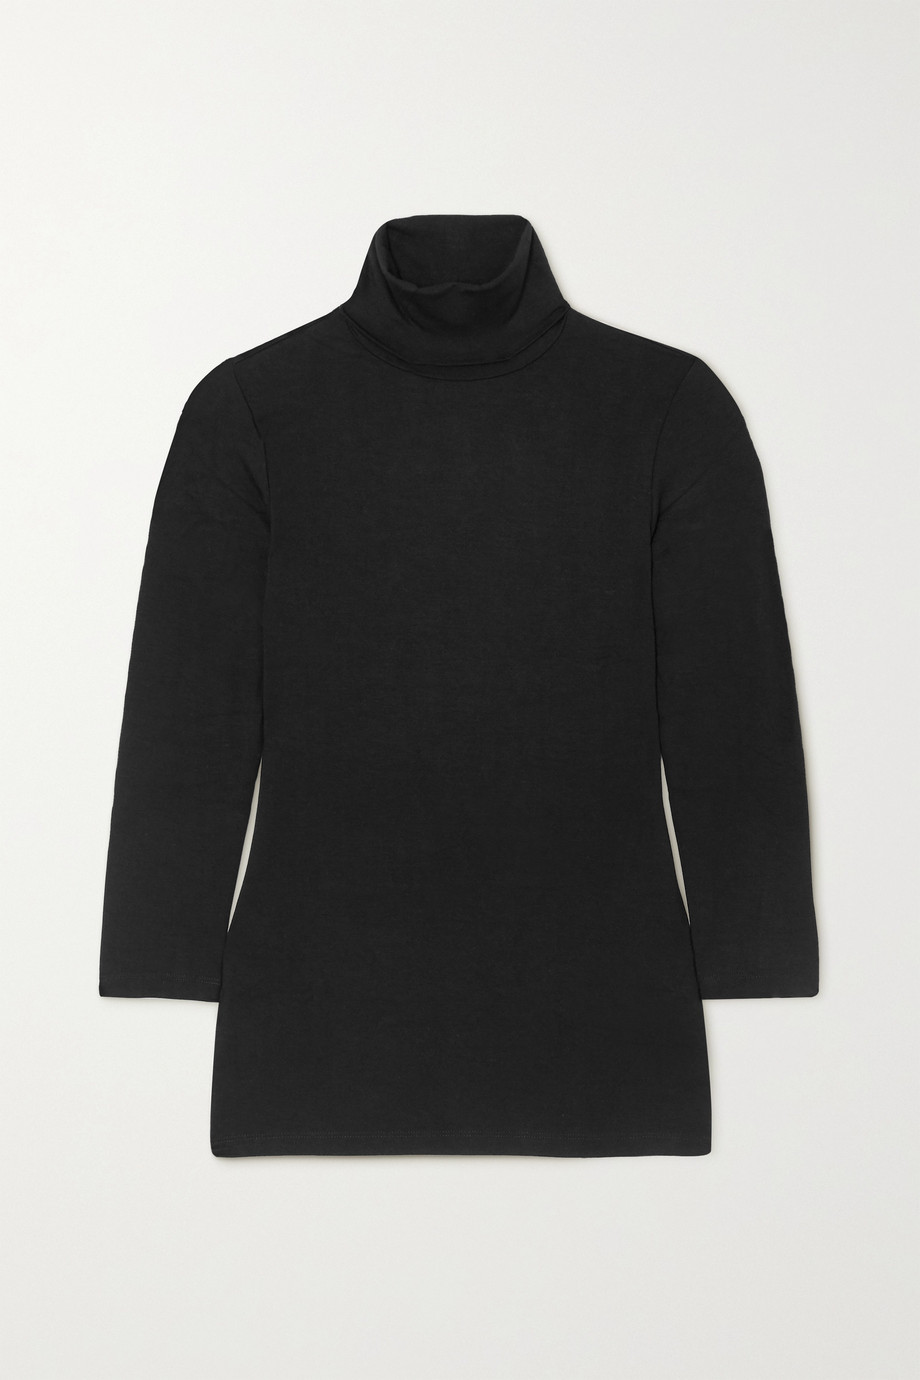 L'AGENCE Aja stretch-jersey turtleneck top